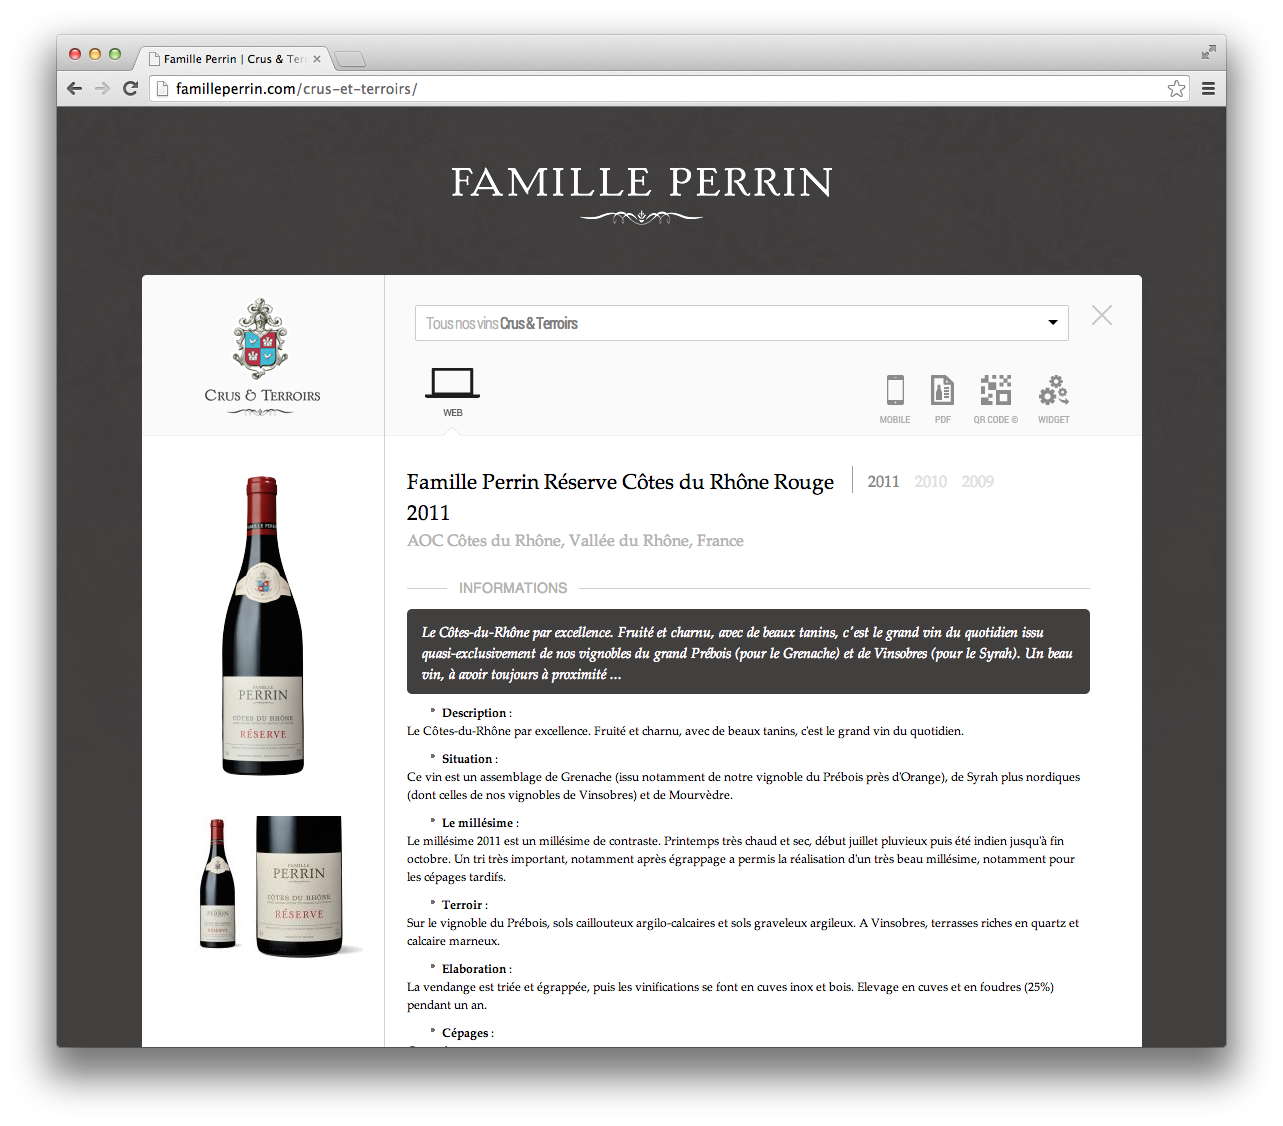 FamillePerrin-com_CrusetTerroirs_2013.png